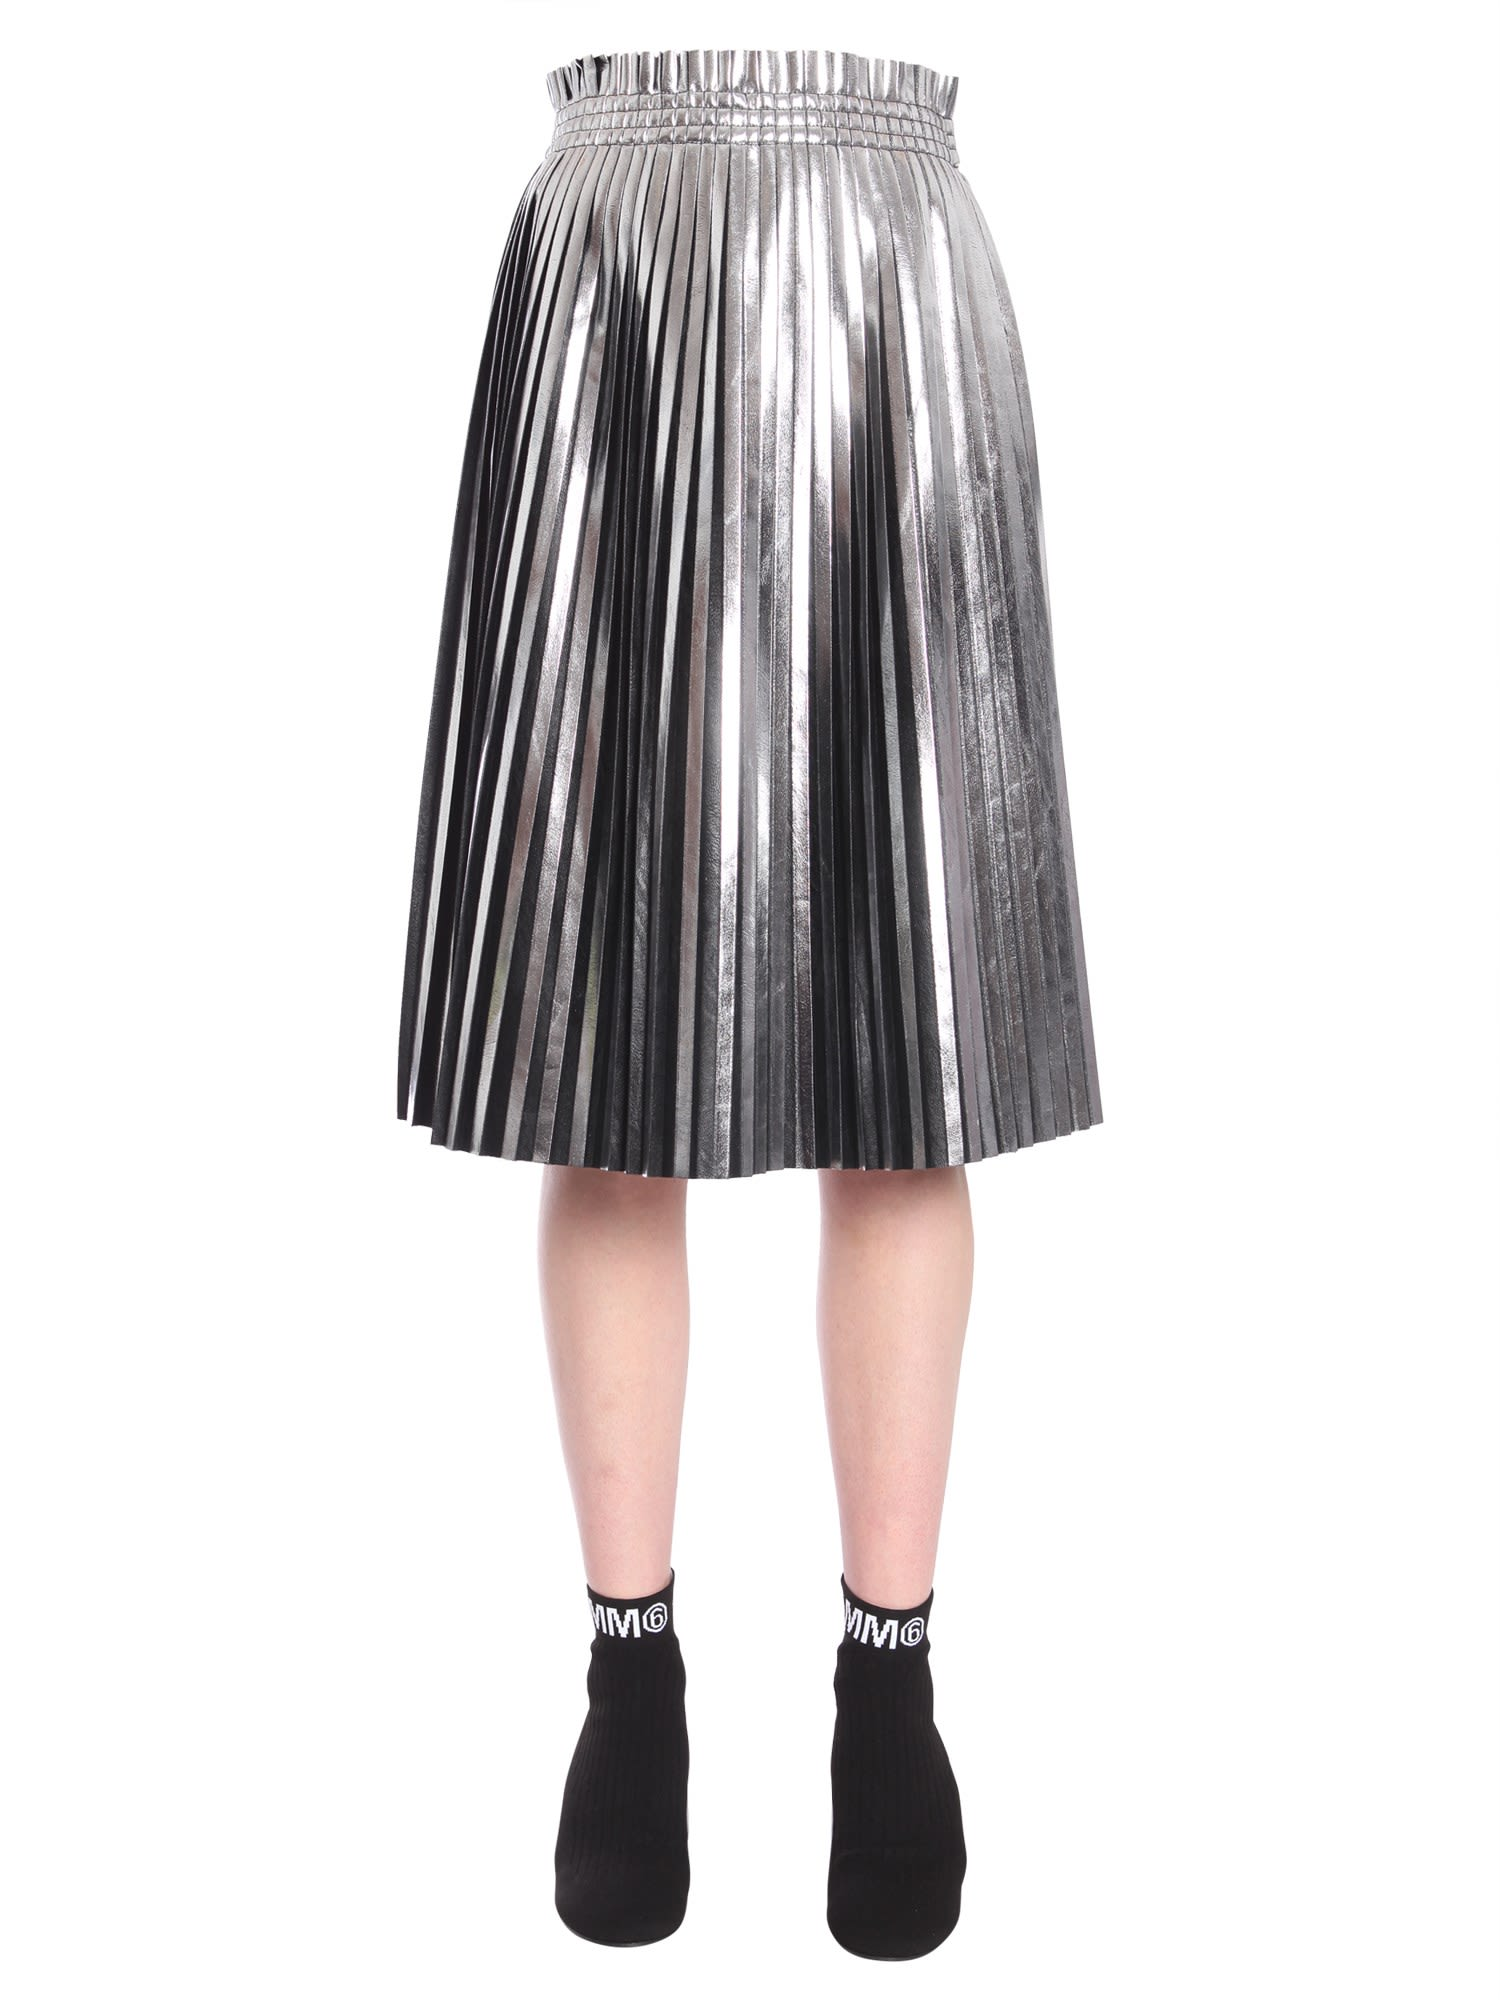 MM6 MAISON MARGIELA Mm6 By Maison Margiela Black And Silver Pleated Faux Leather Skirt